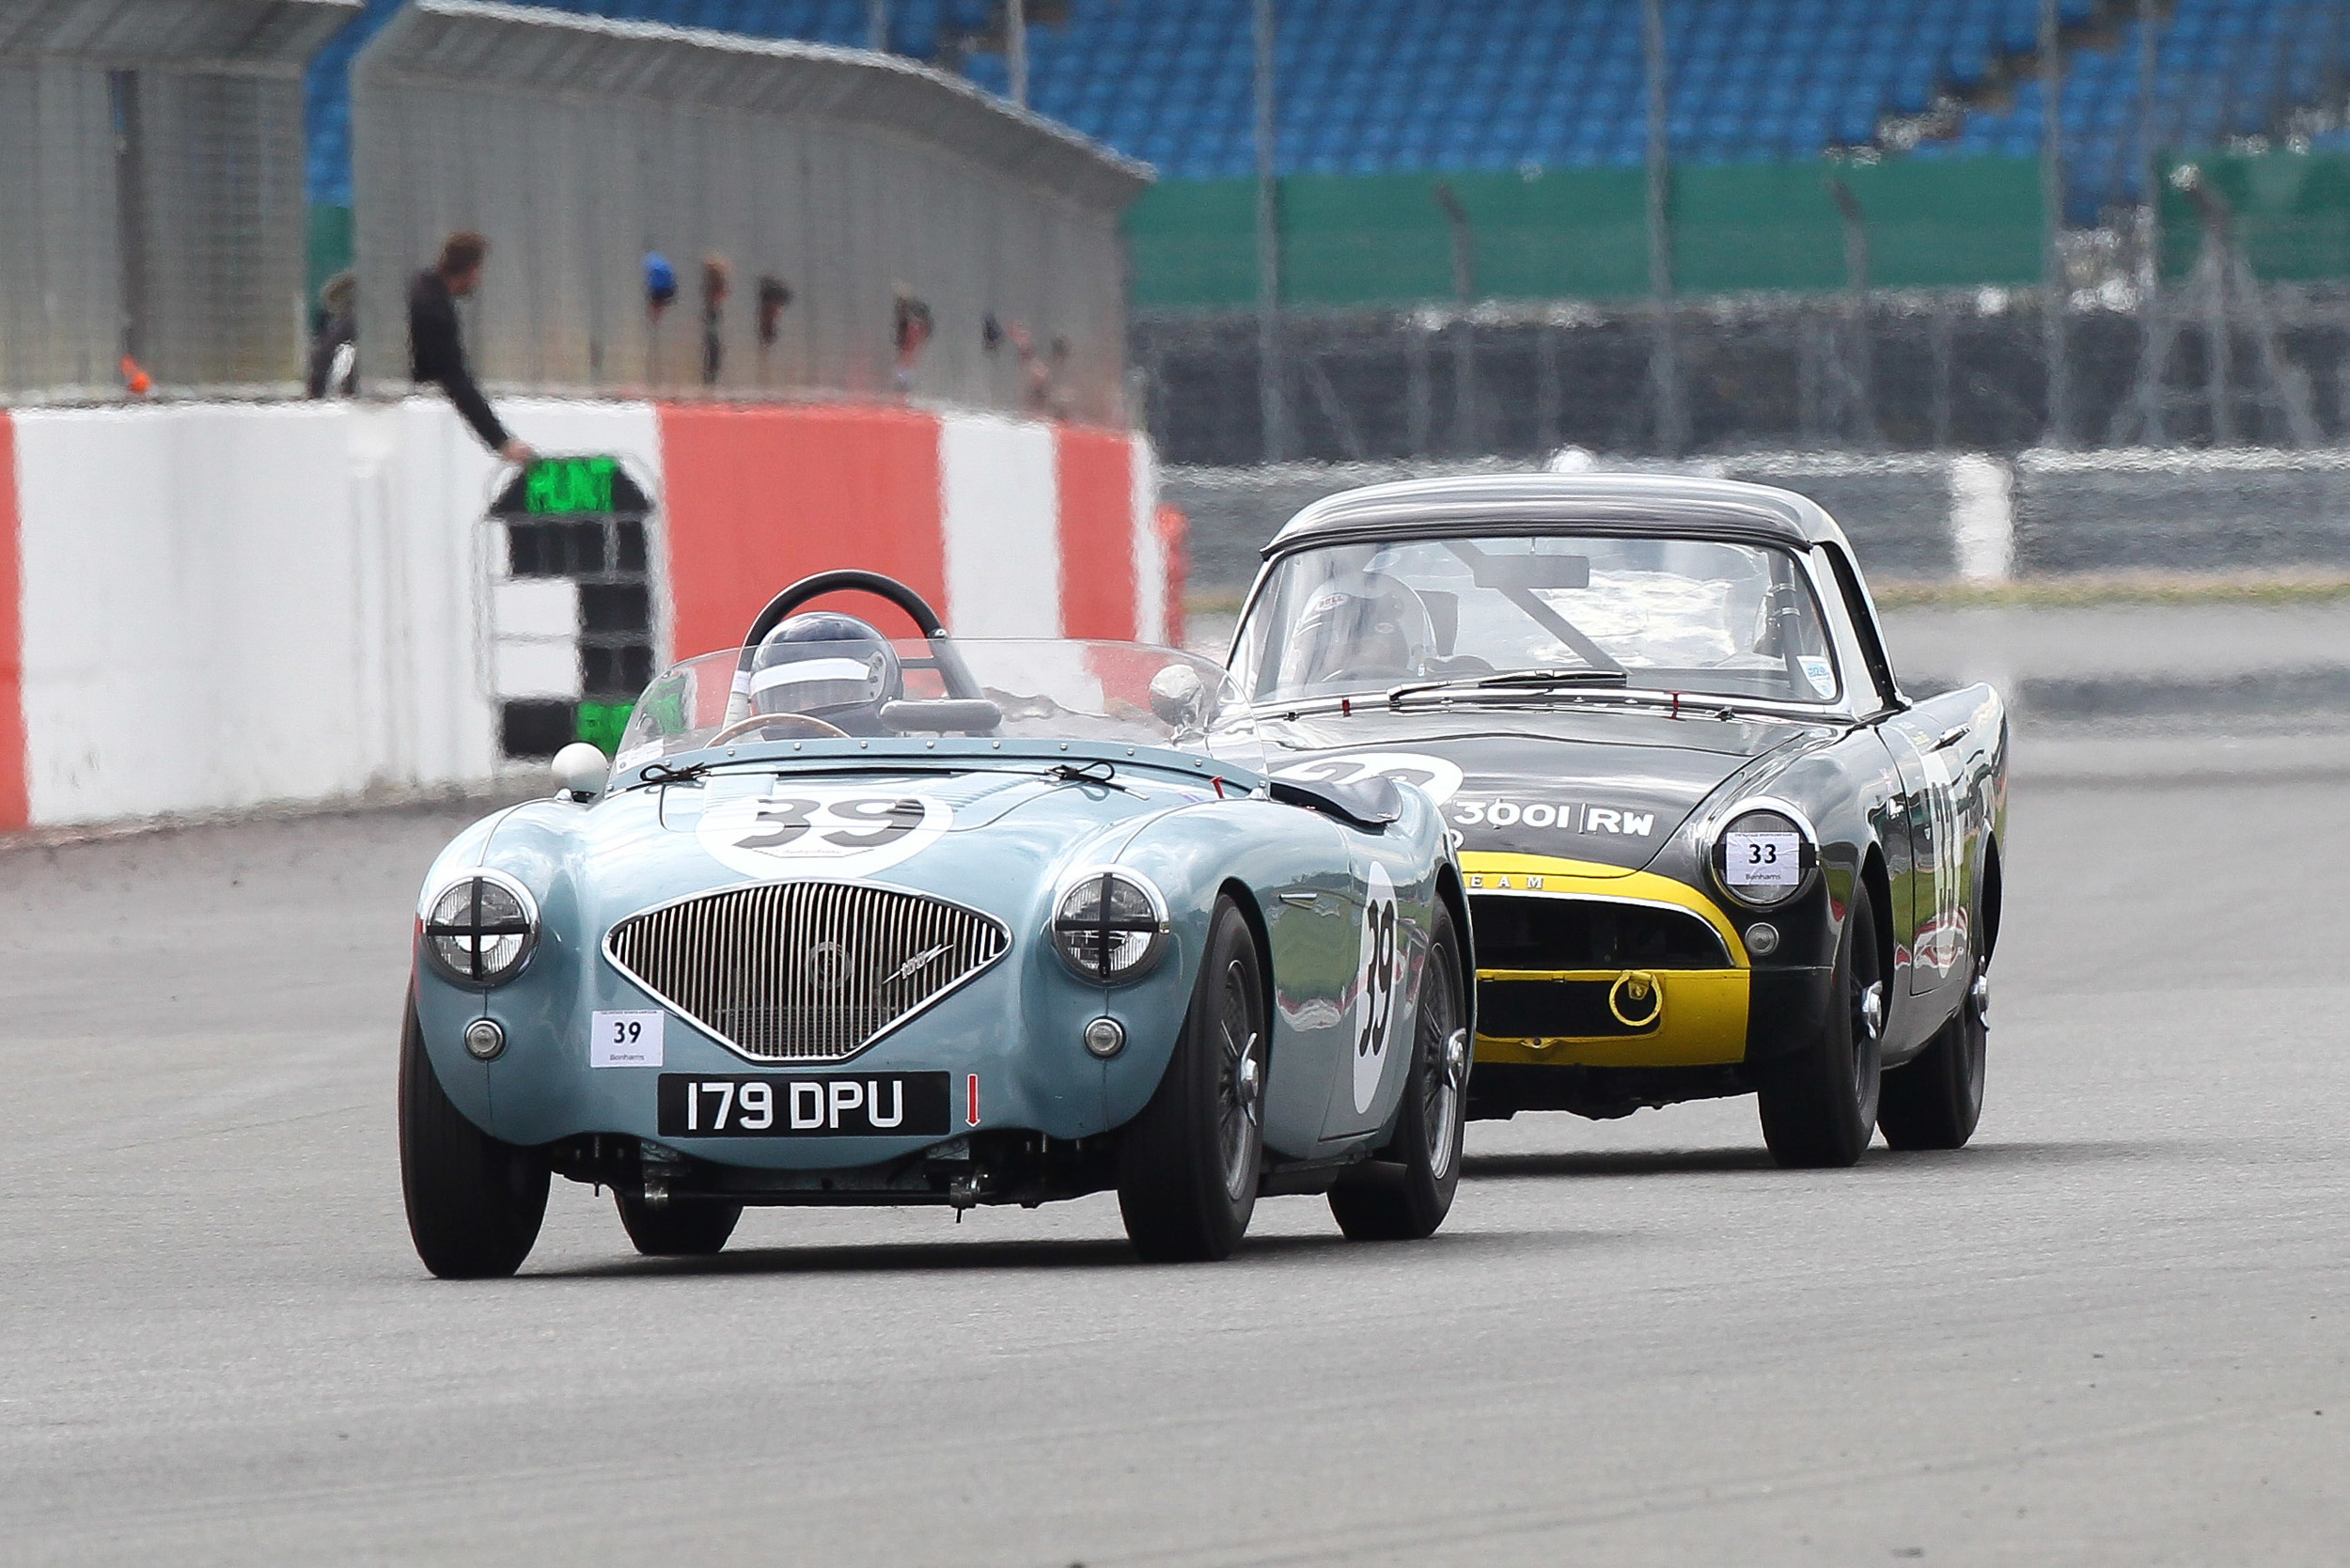 Superb dice between Robert Clarke (Austin Healey 100/4) and Keith Hampson (Sunbeam Alpine Le Mans)  went to the flag      Photo - Richard Styles